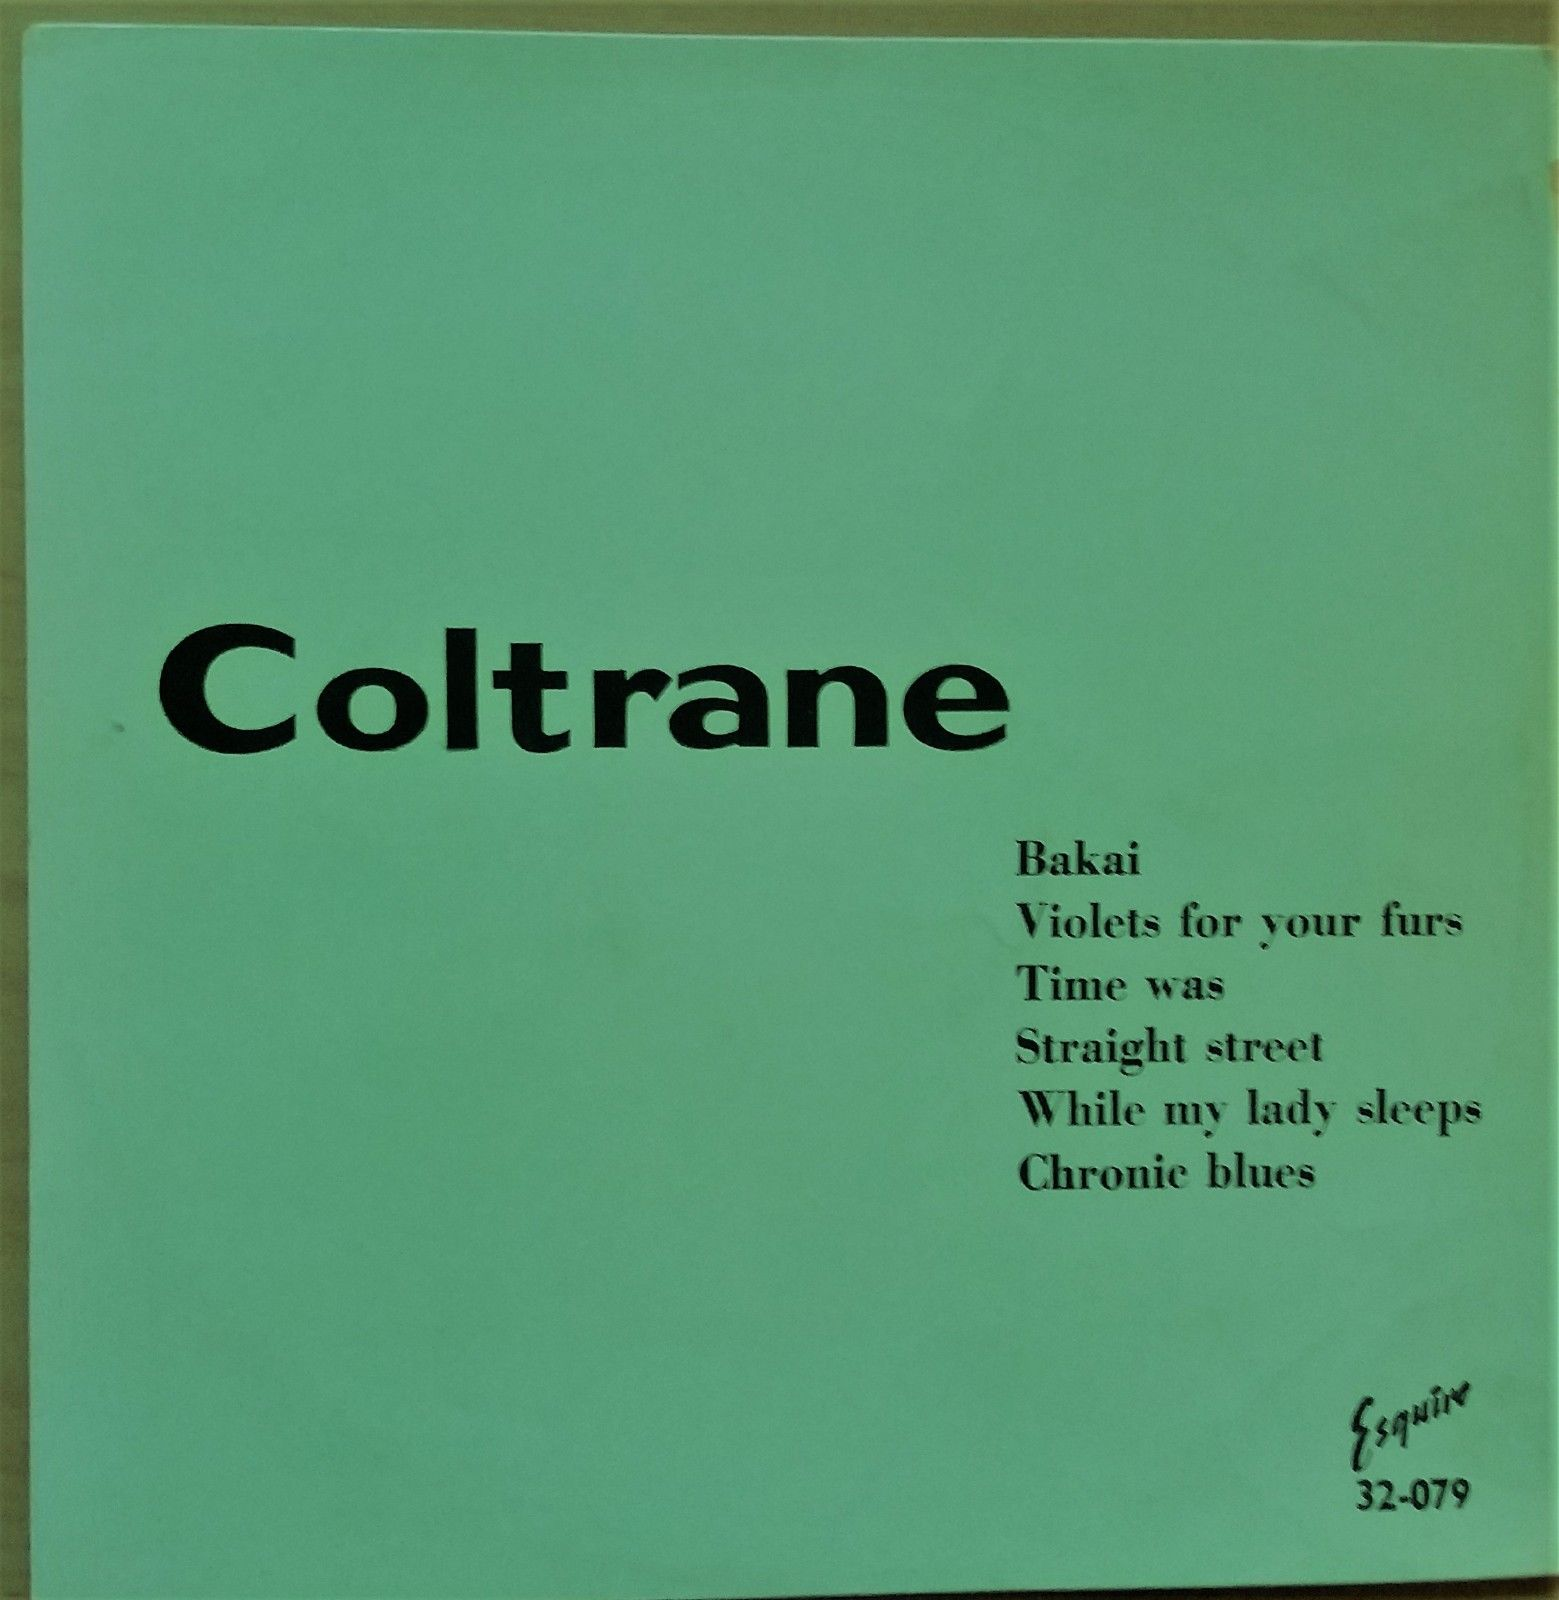 """""""Coltrane"""" title of Esquire LP 32-079 by John Coltrane from late 1950s EX-/VG+"""